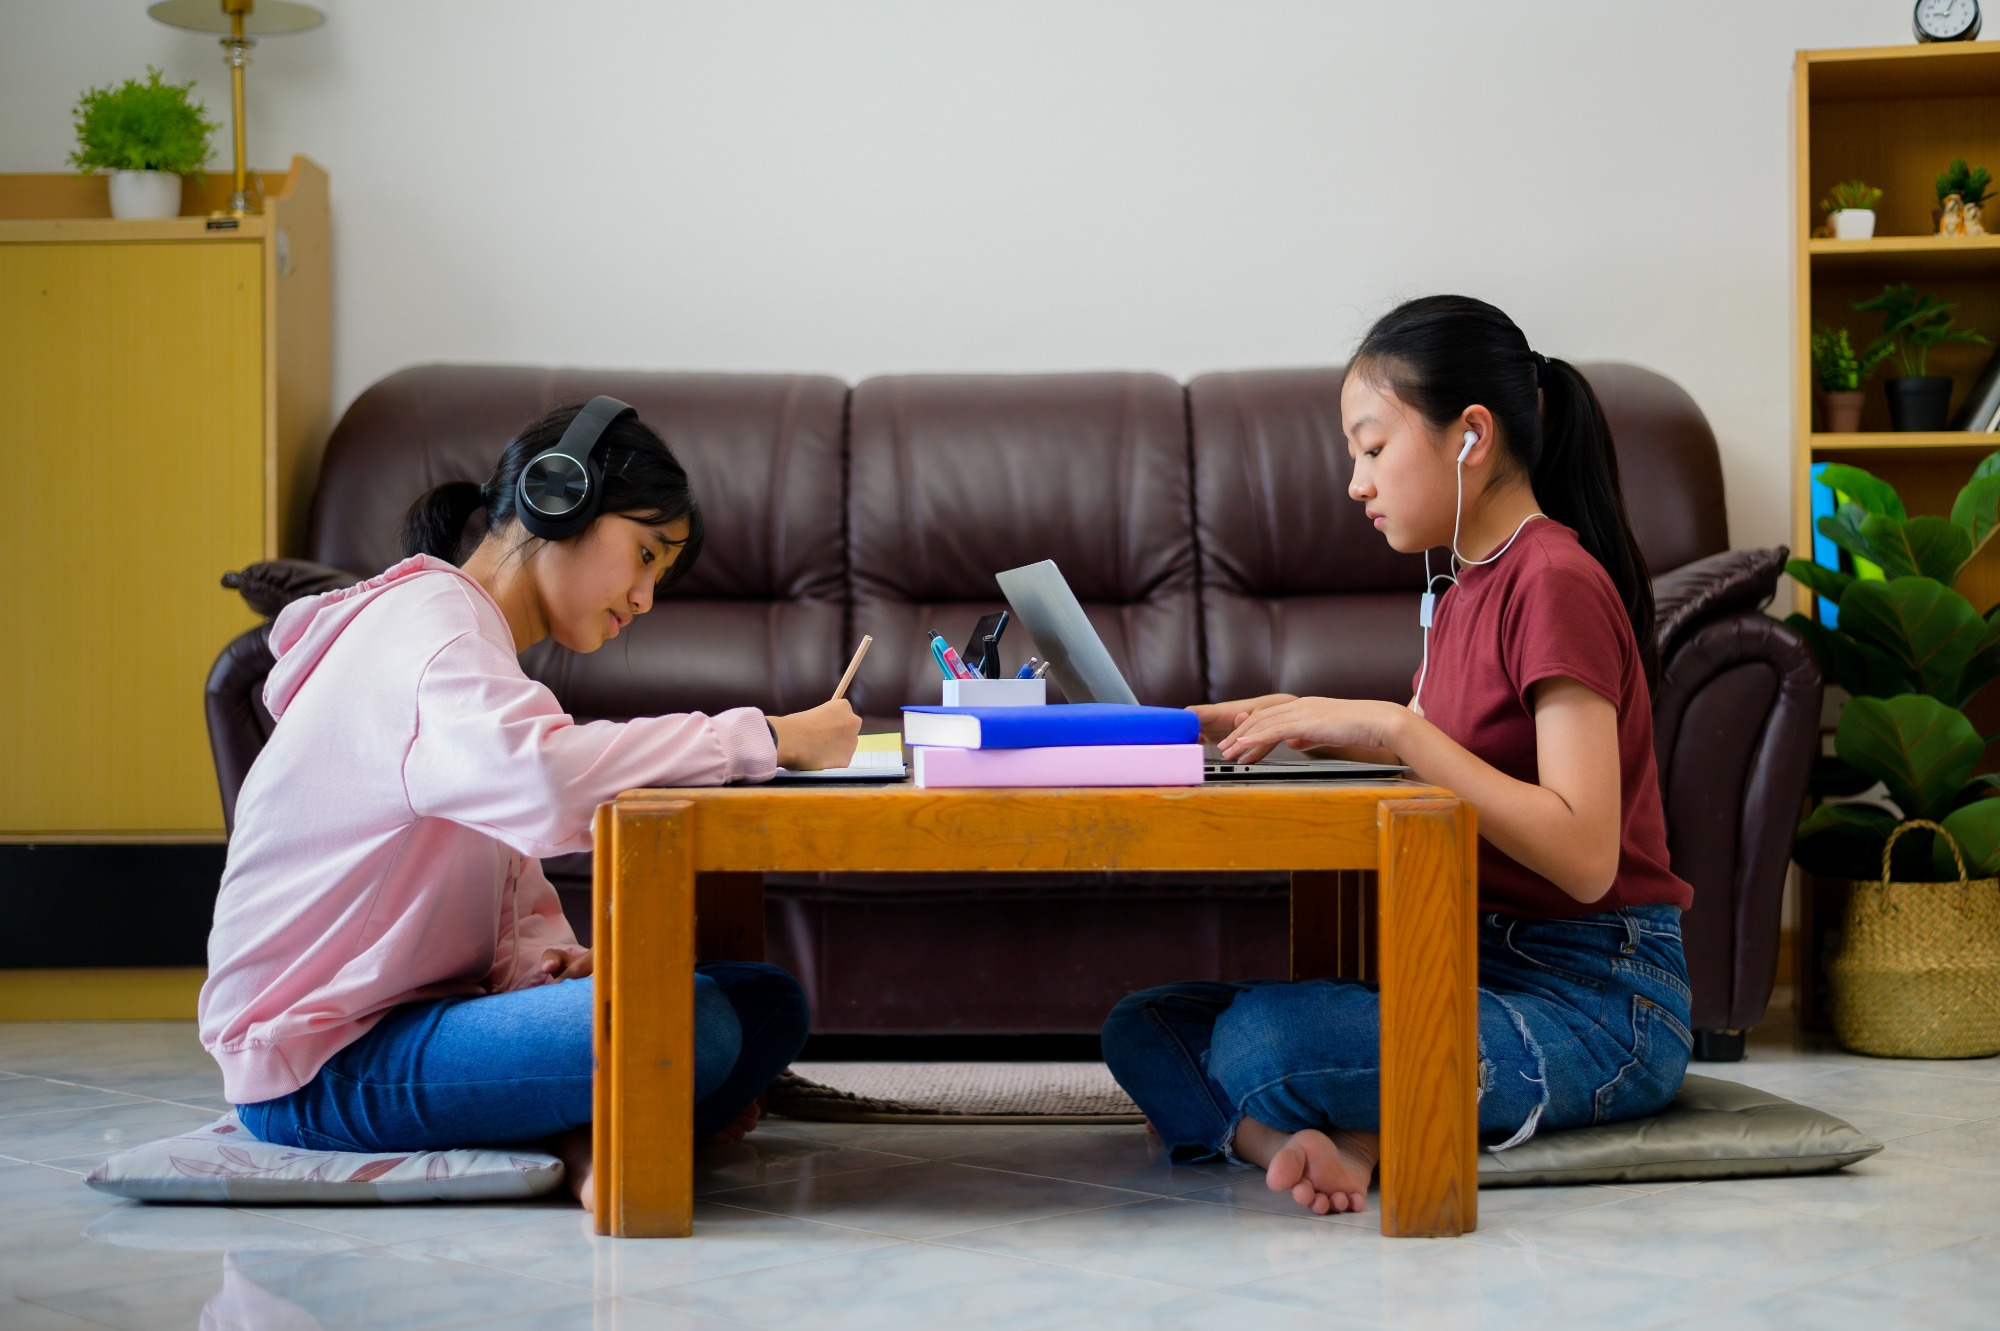 Reduce educational materials, increase pastoral care to reduce e-learning  stress, say psychologists - Education Technology